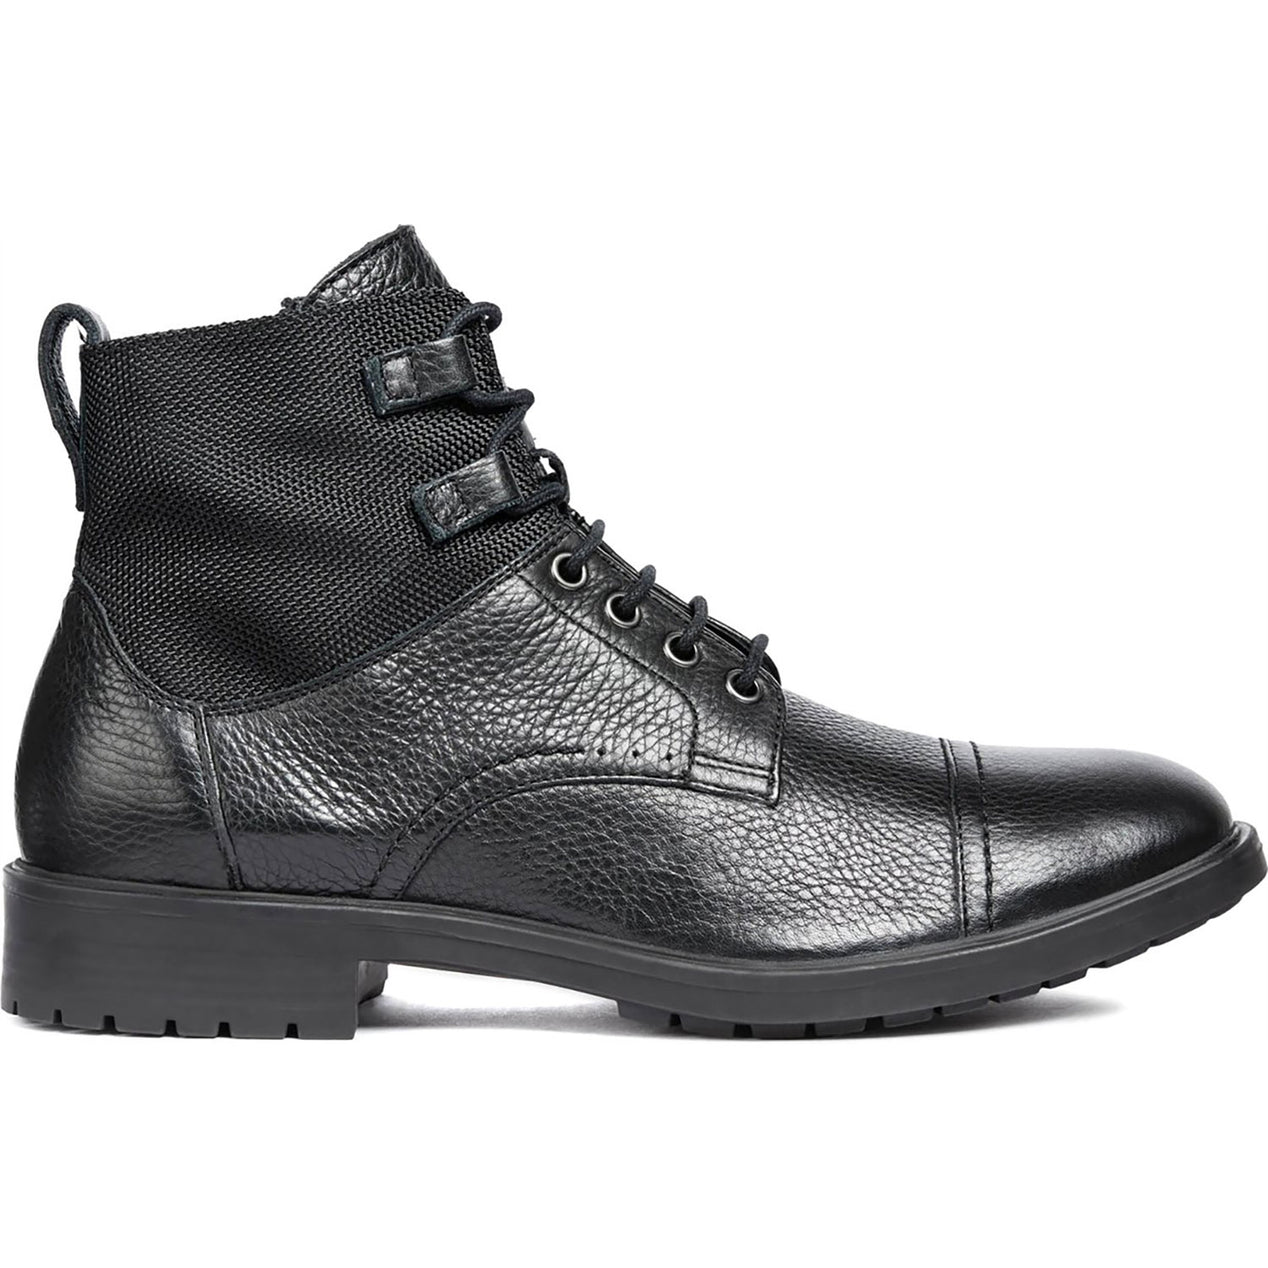 2f97896bf1d Geox Men's Kapsian Ankle Boots | Altitude Sports